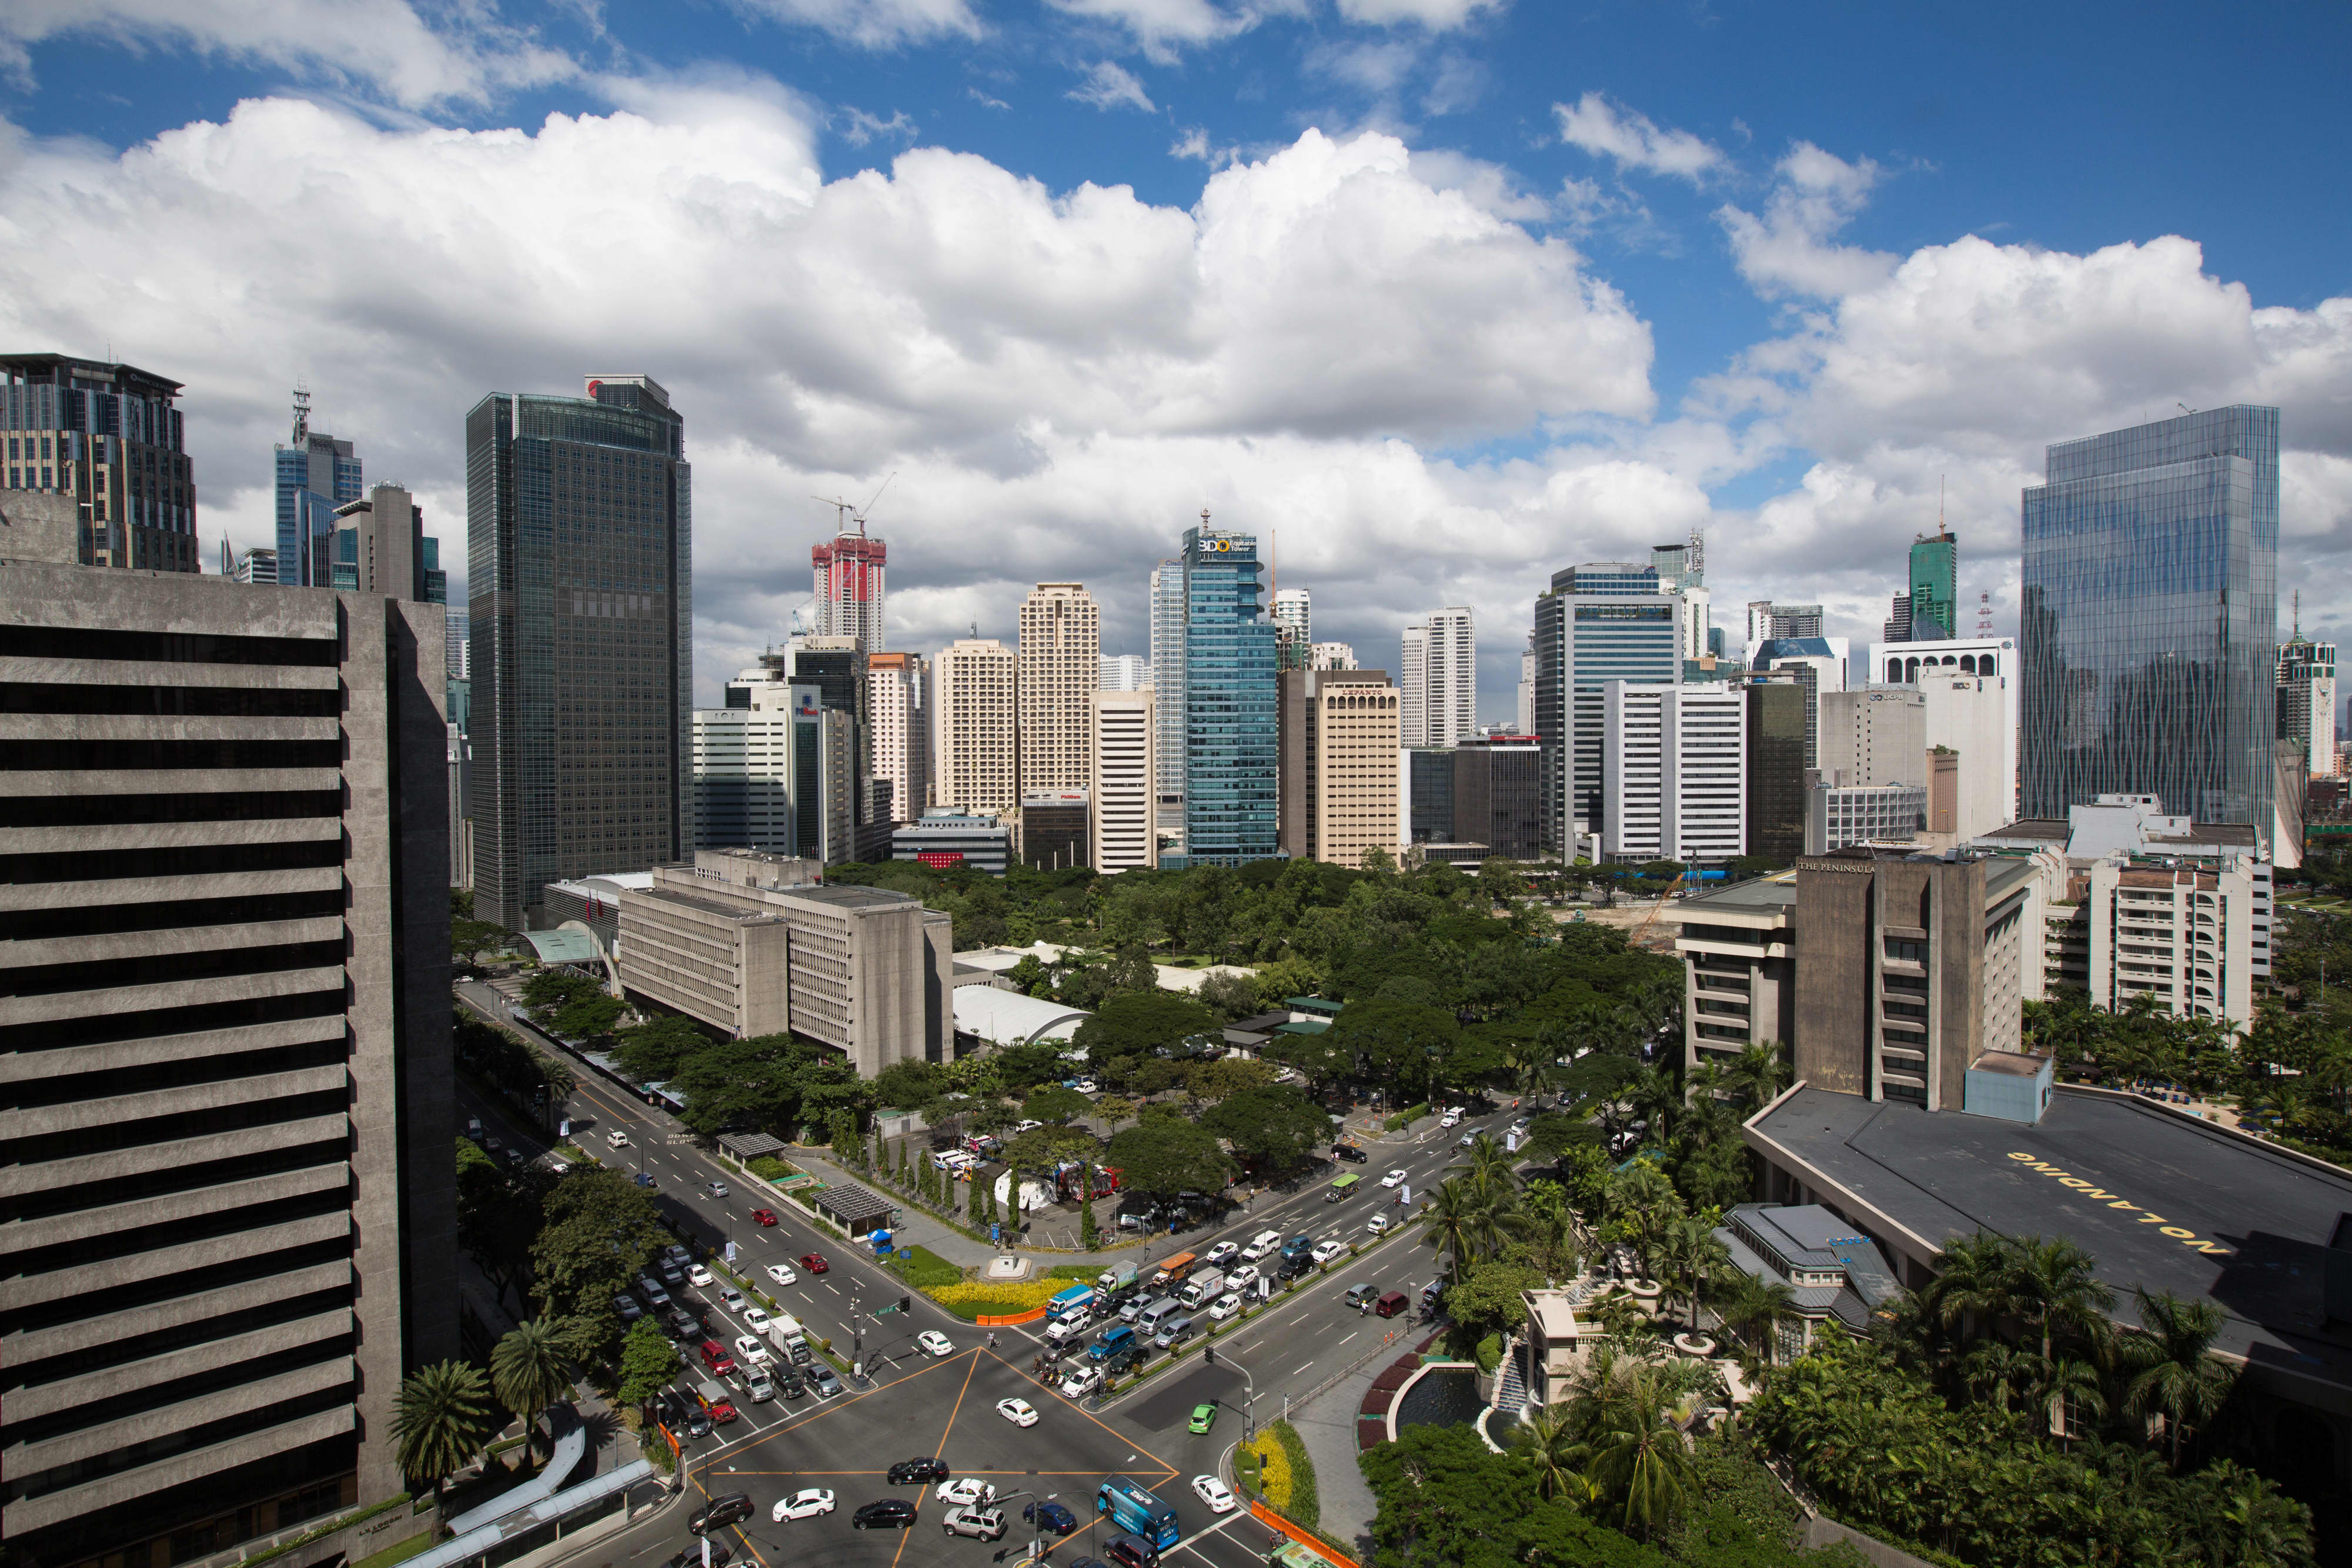 The Makati central business district of Manila where Ayala Land is building new residential developments, office buildings and hotels.